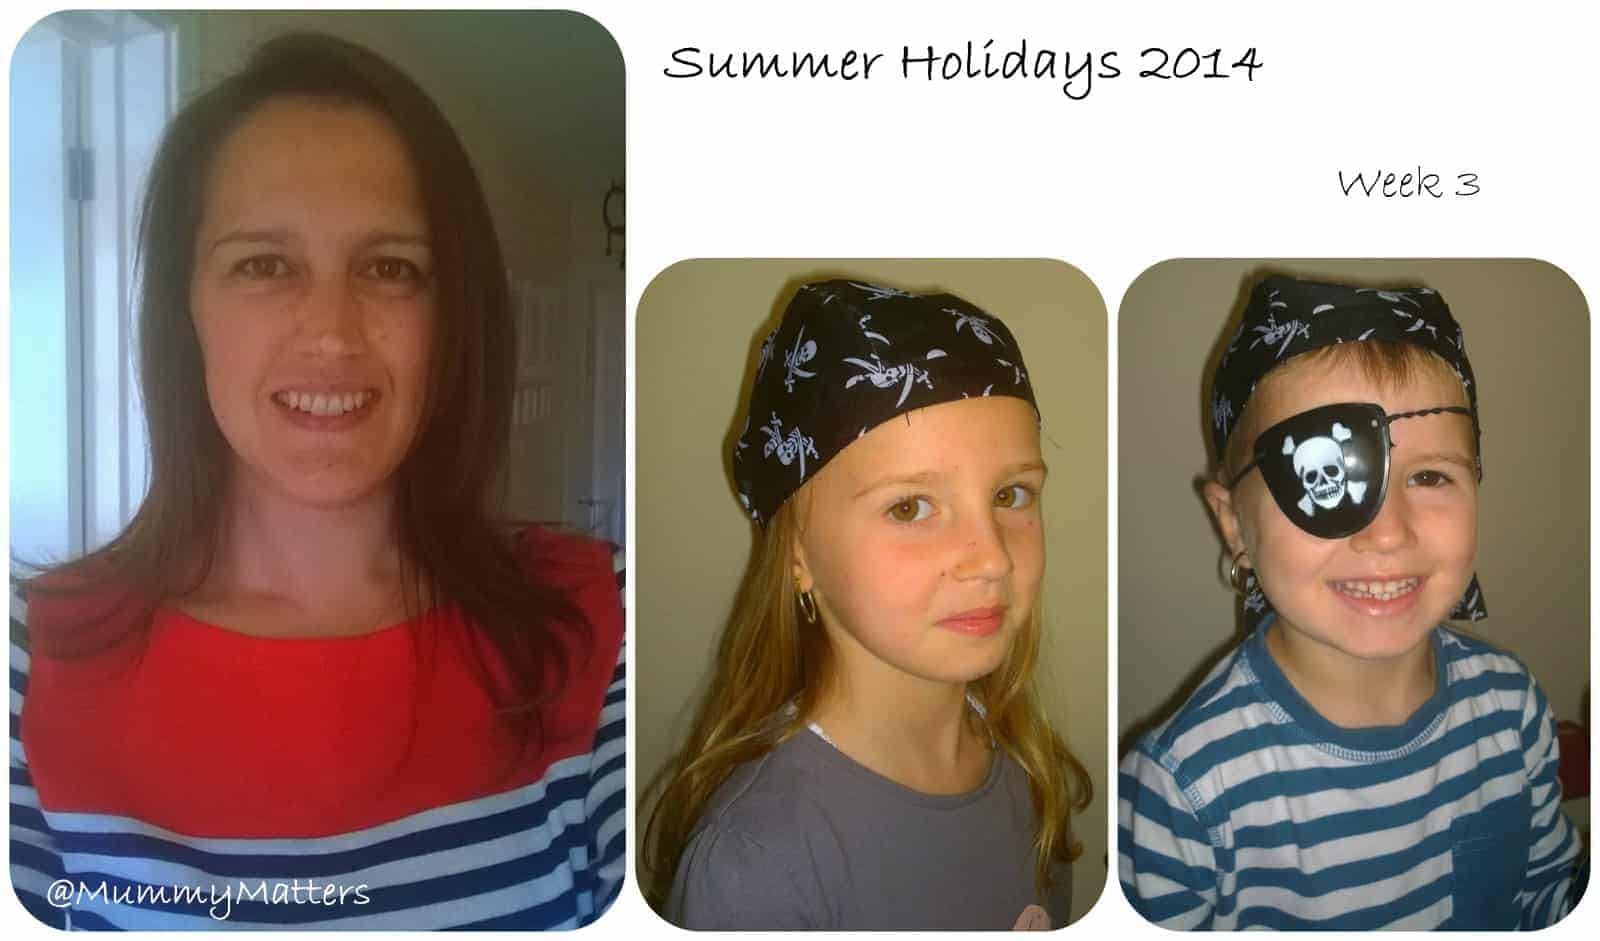 Summer Holidays 2014 – 18th to 21st August